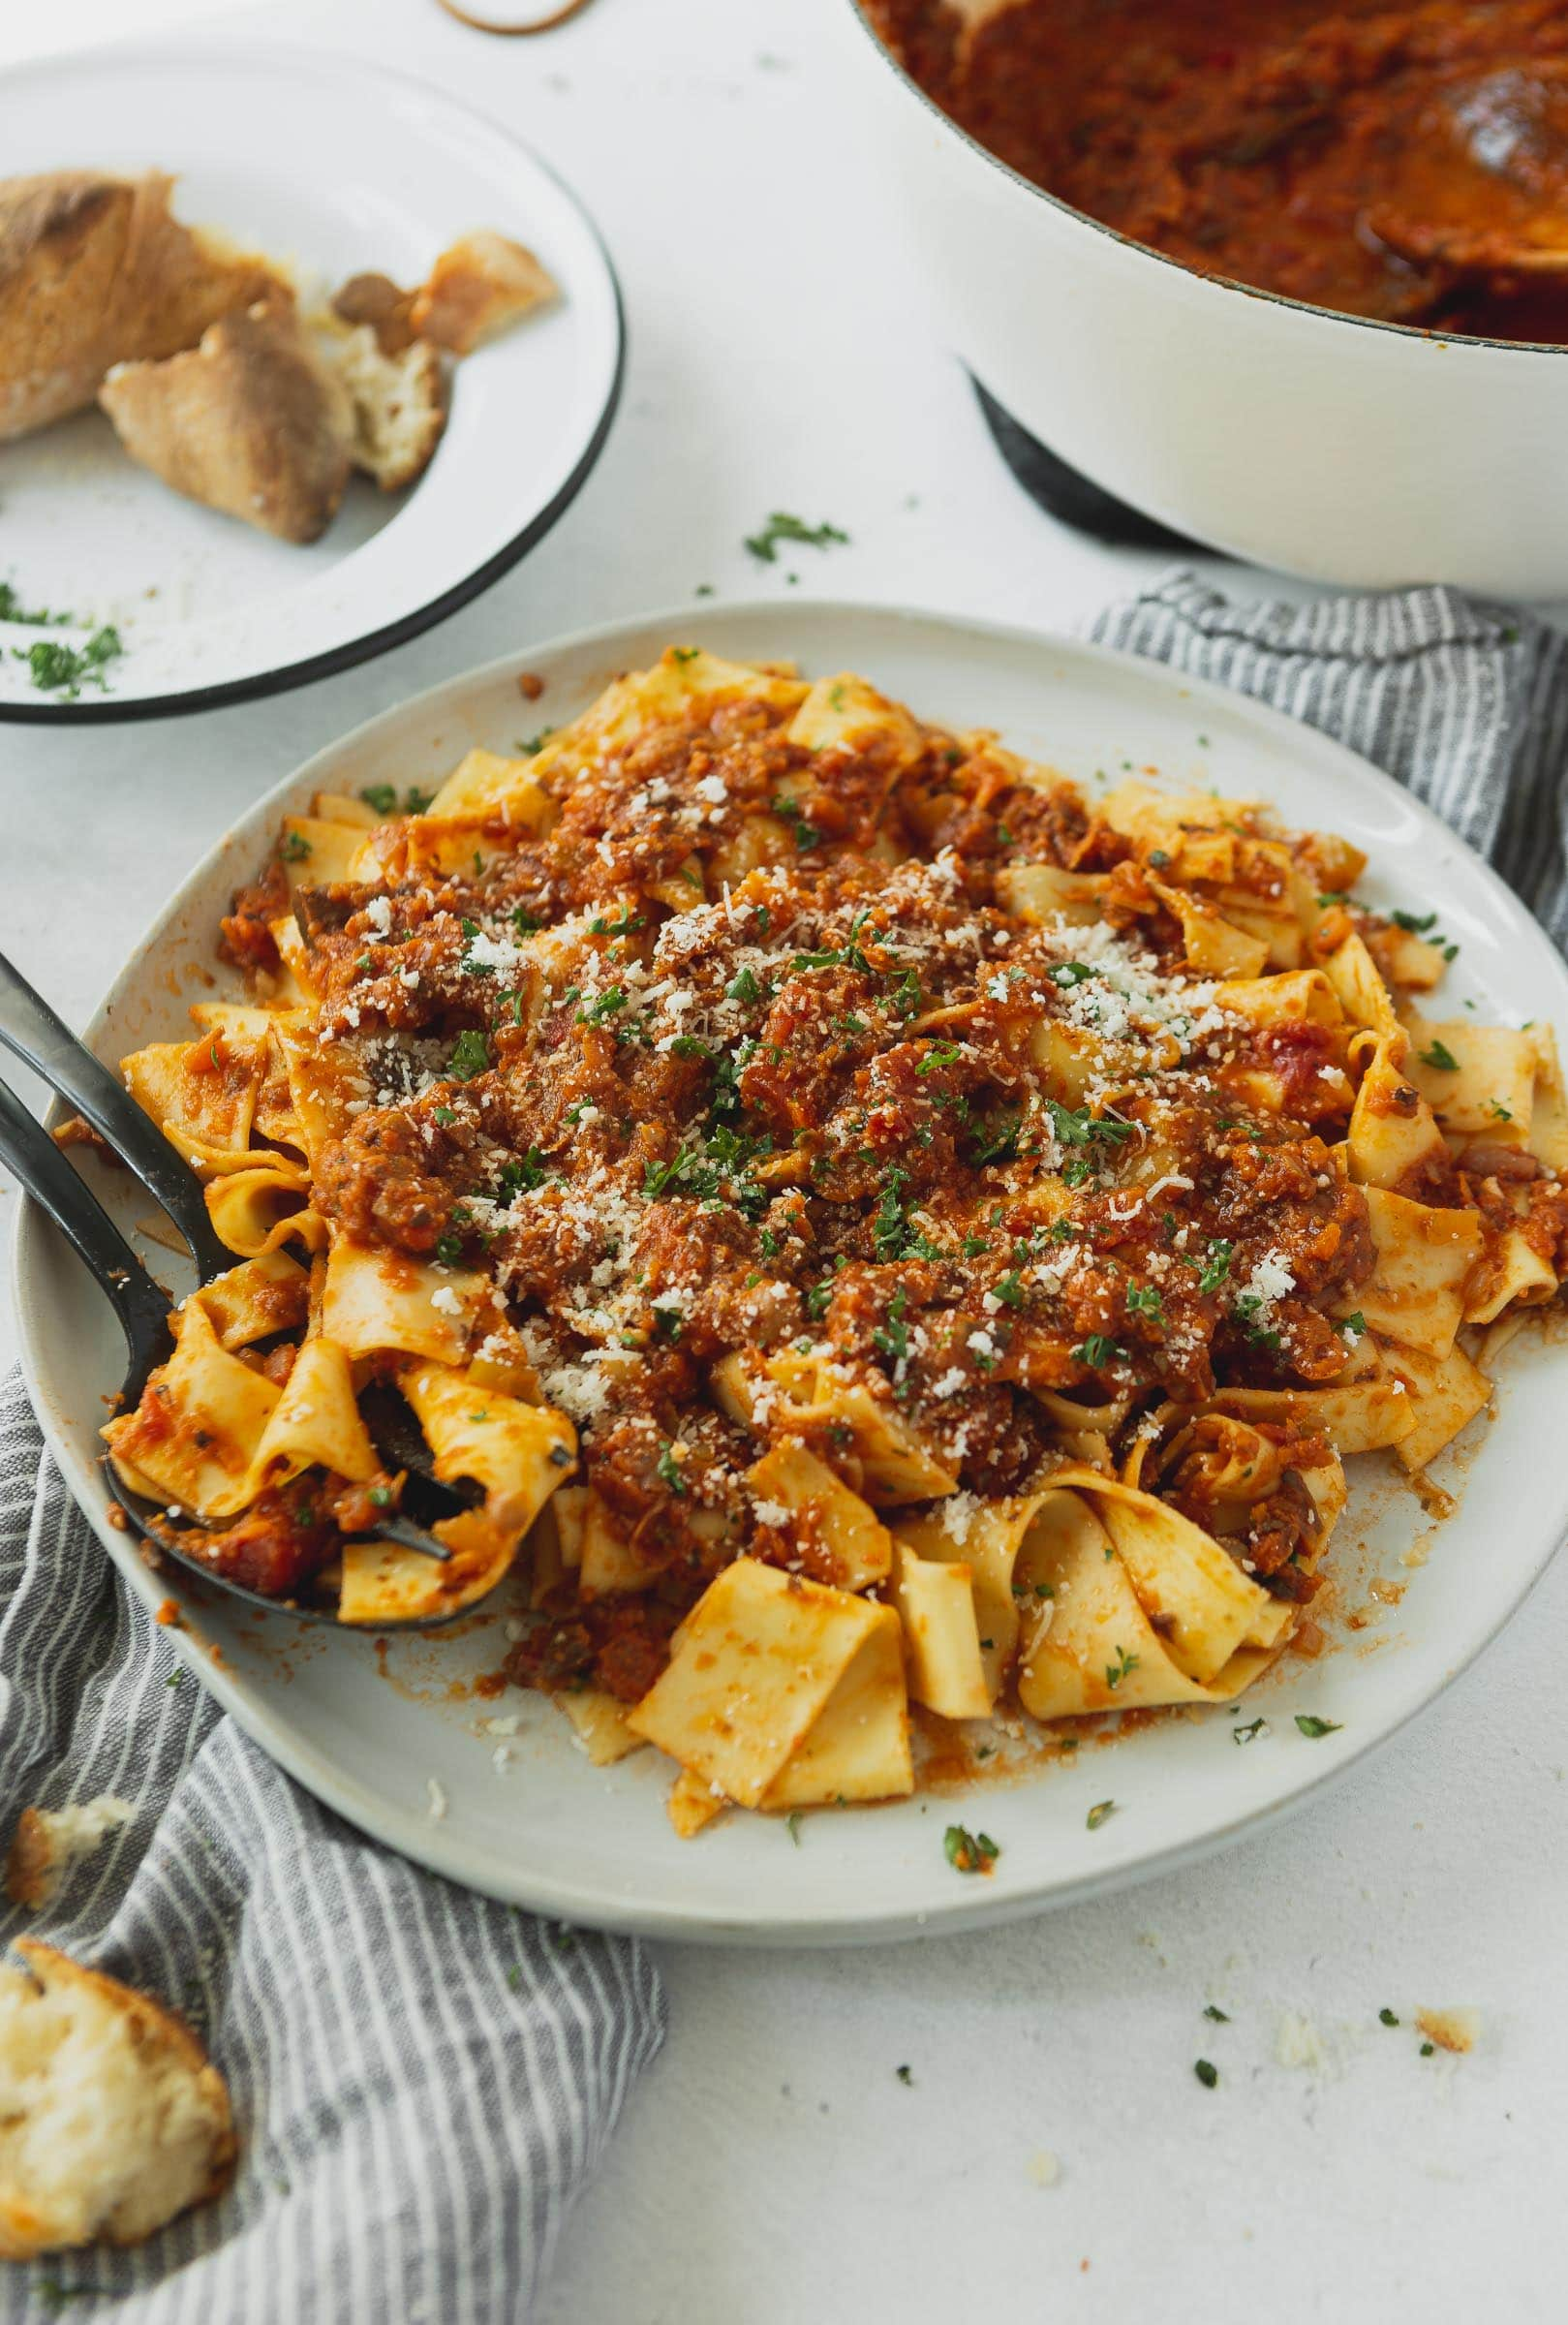 A plate full of pasta topped with vegan bolognese sauce. There is a fork on the plate and the pasta is topped with a little grated cheese and cilantro.